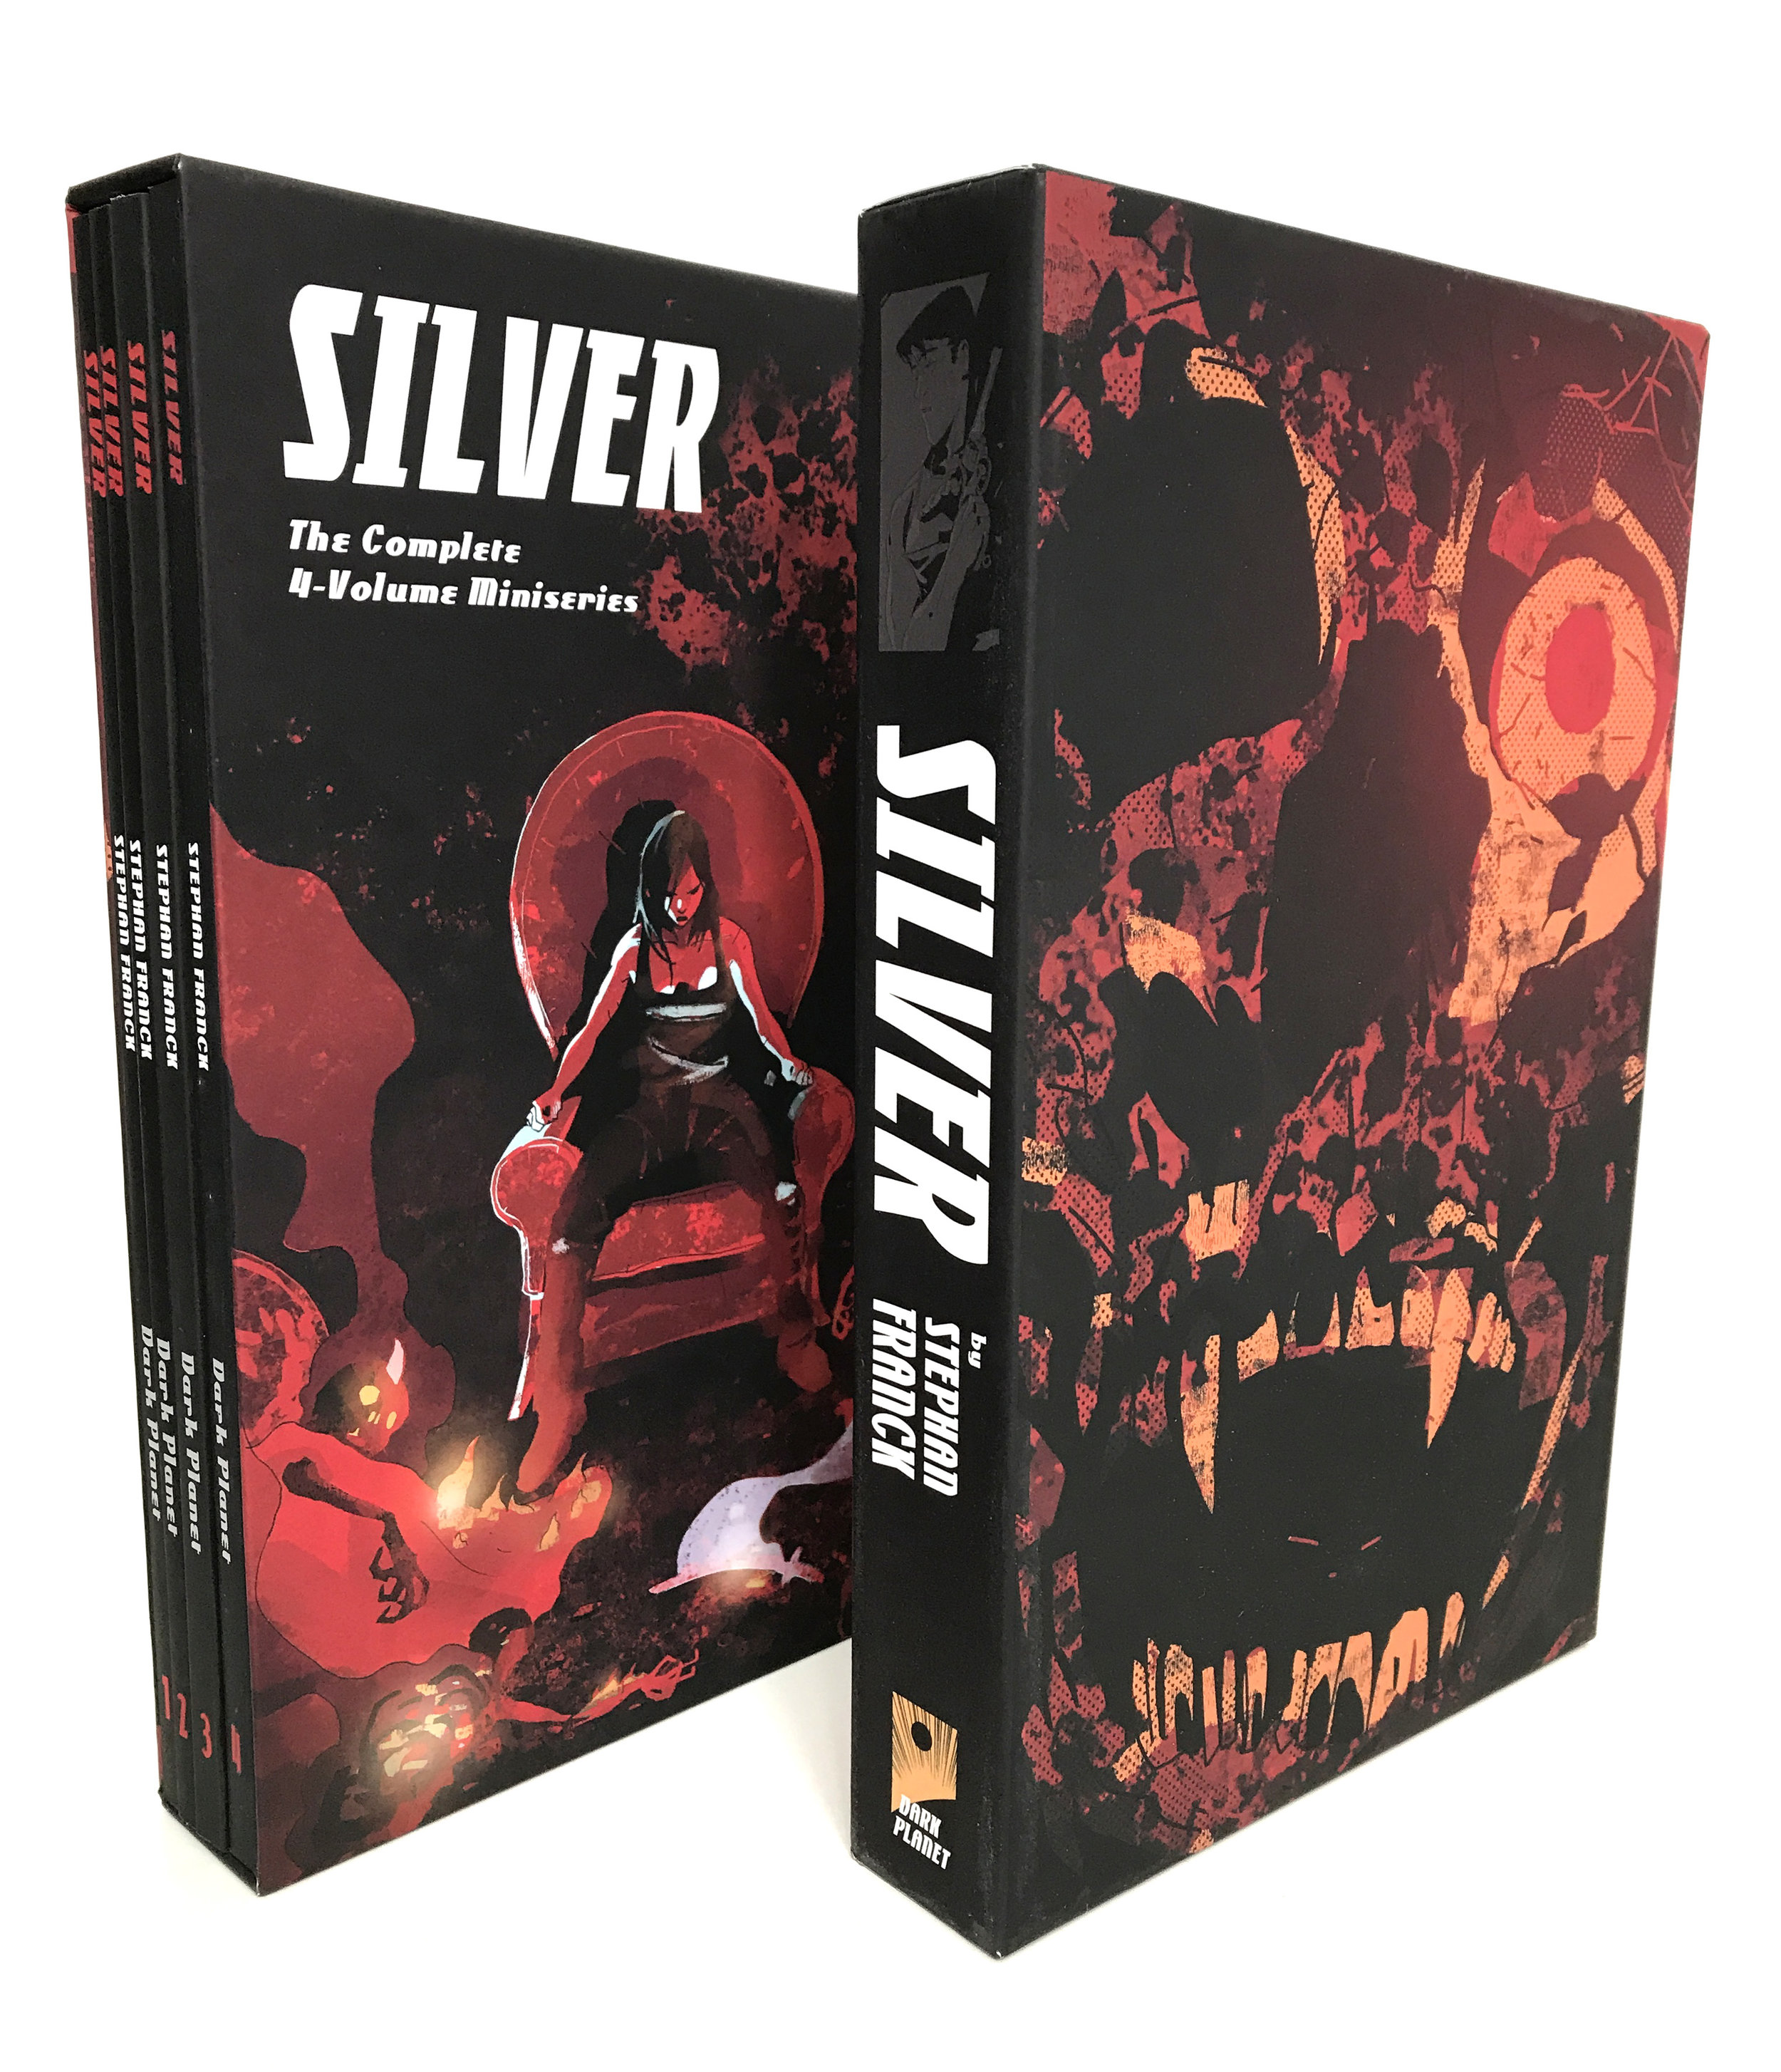 Get the complete SILVER 4-volume TPB miniseries in one fell swoop, housed in this badass slipcase.